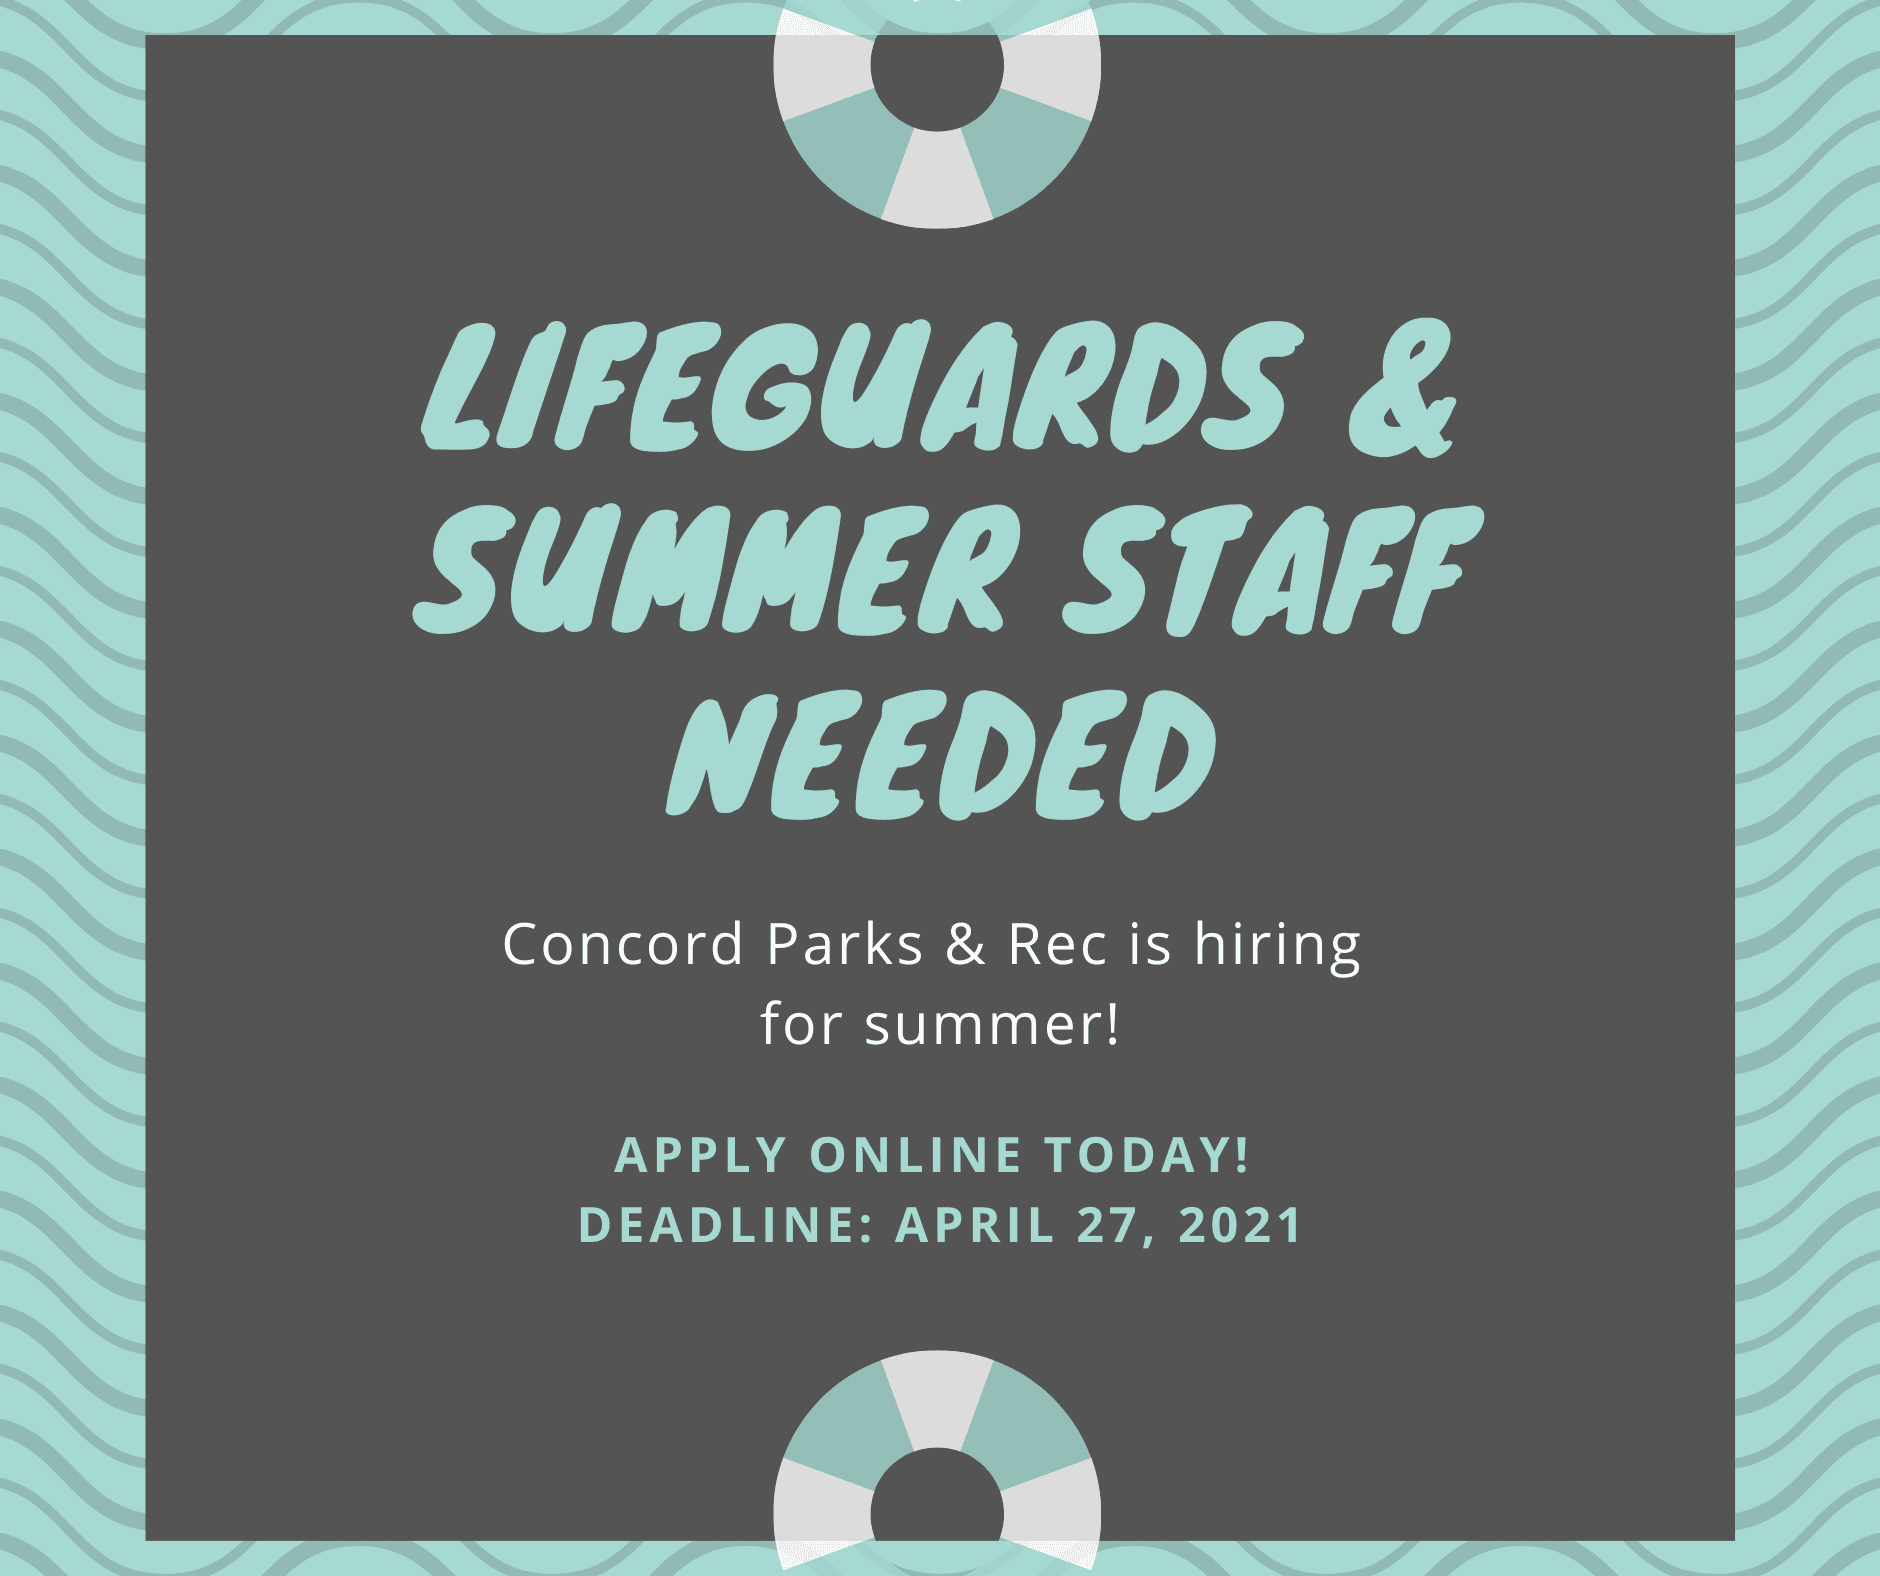 Lifeguards Needed (1)